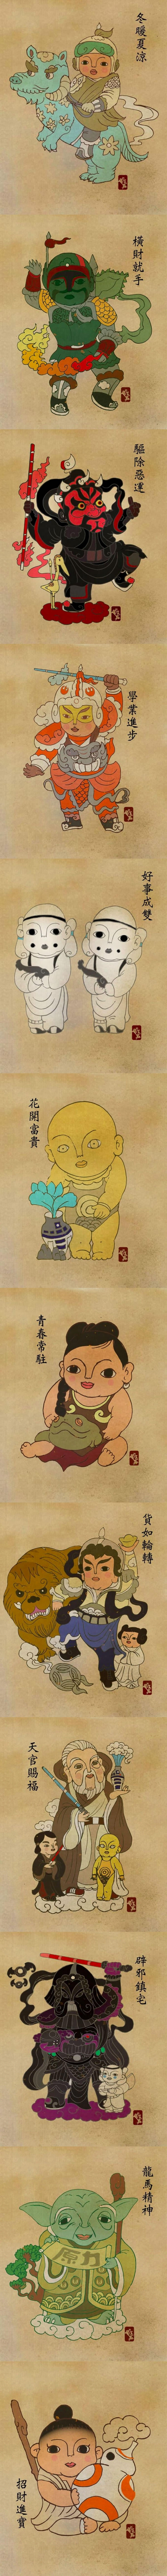 Traditional Chinese art mixes with Star Wars characters